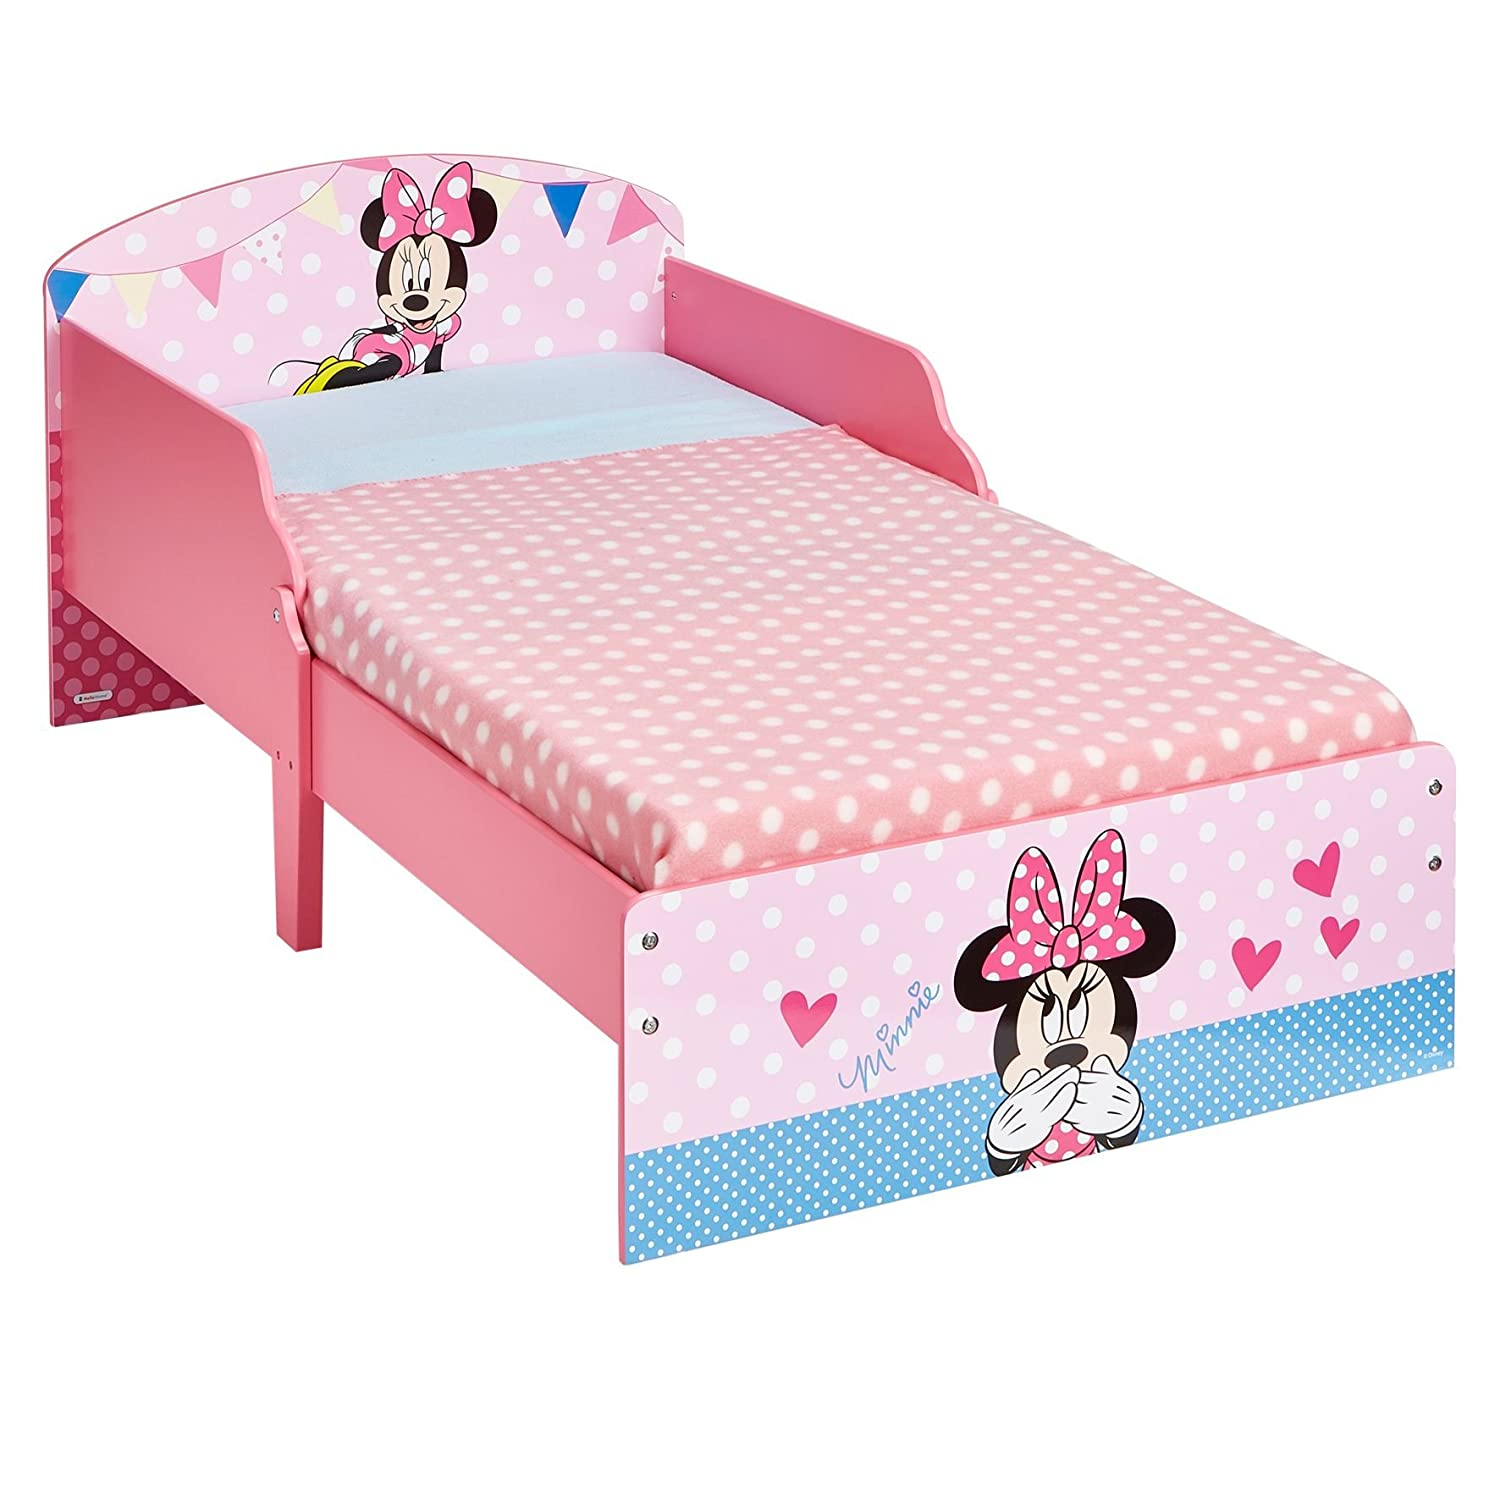 Disney Minnie Mouse Kids Toddler Bed By Hellohome Amazoncouk Kitchen